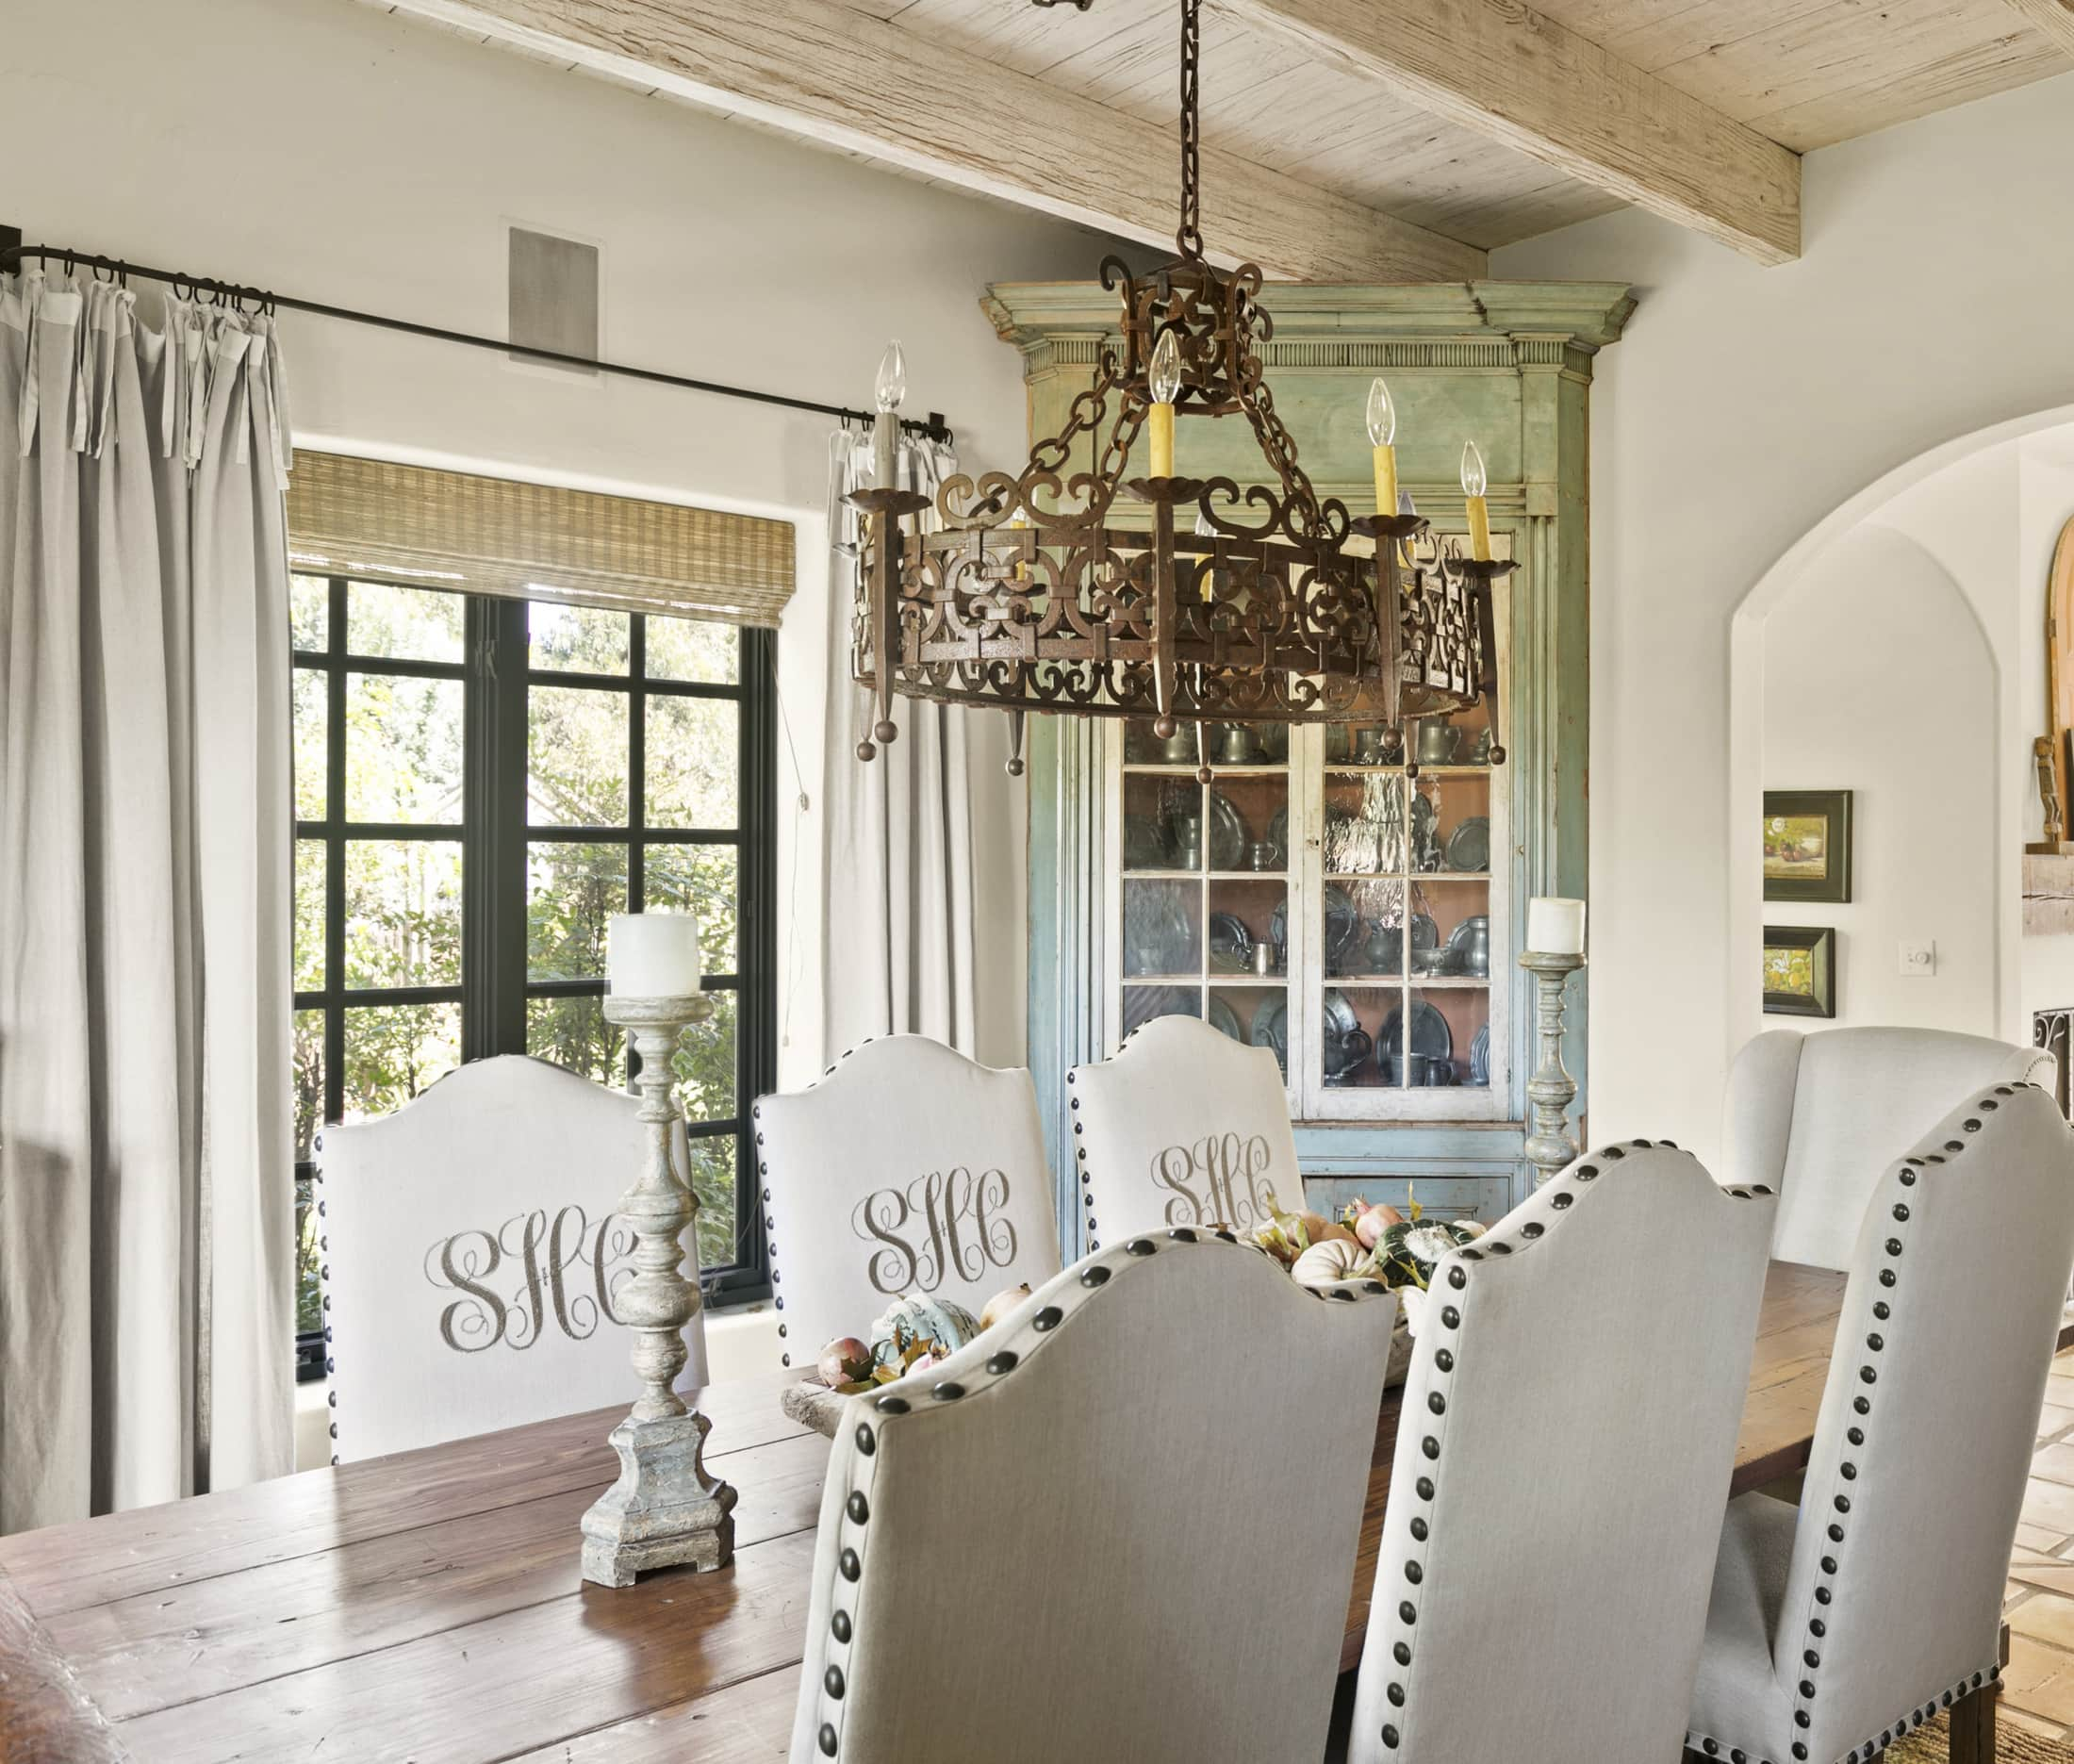 cindy hattersley's dining room in her spanish colonial